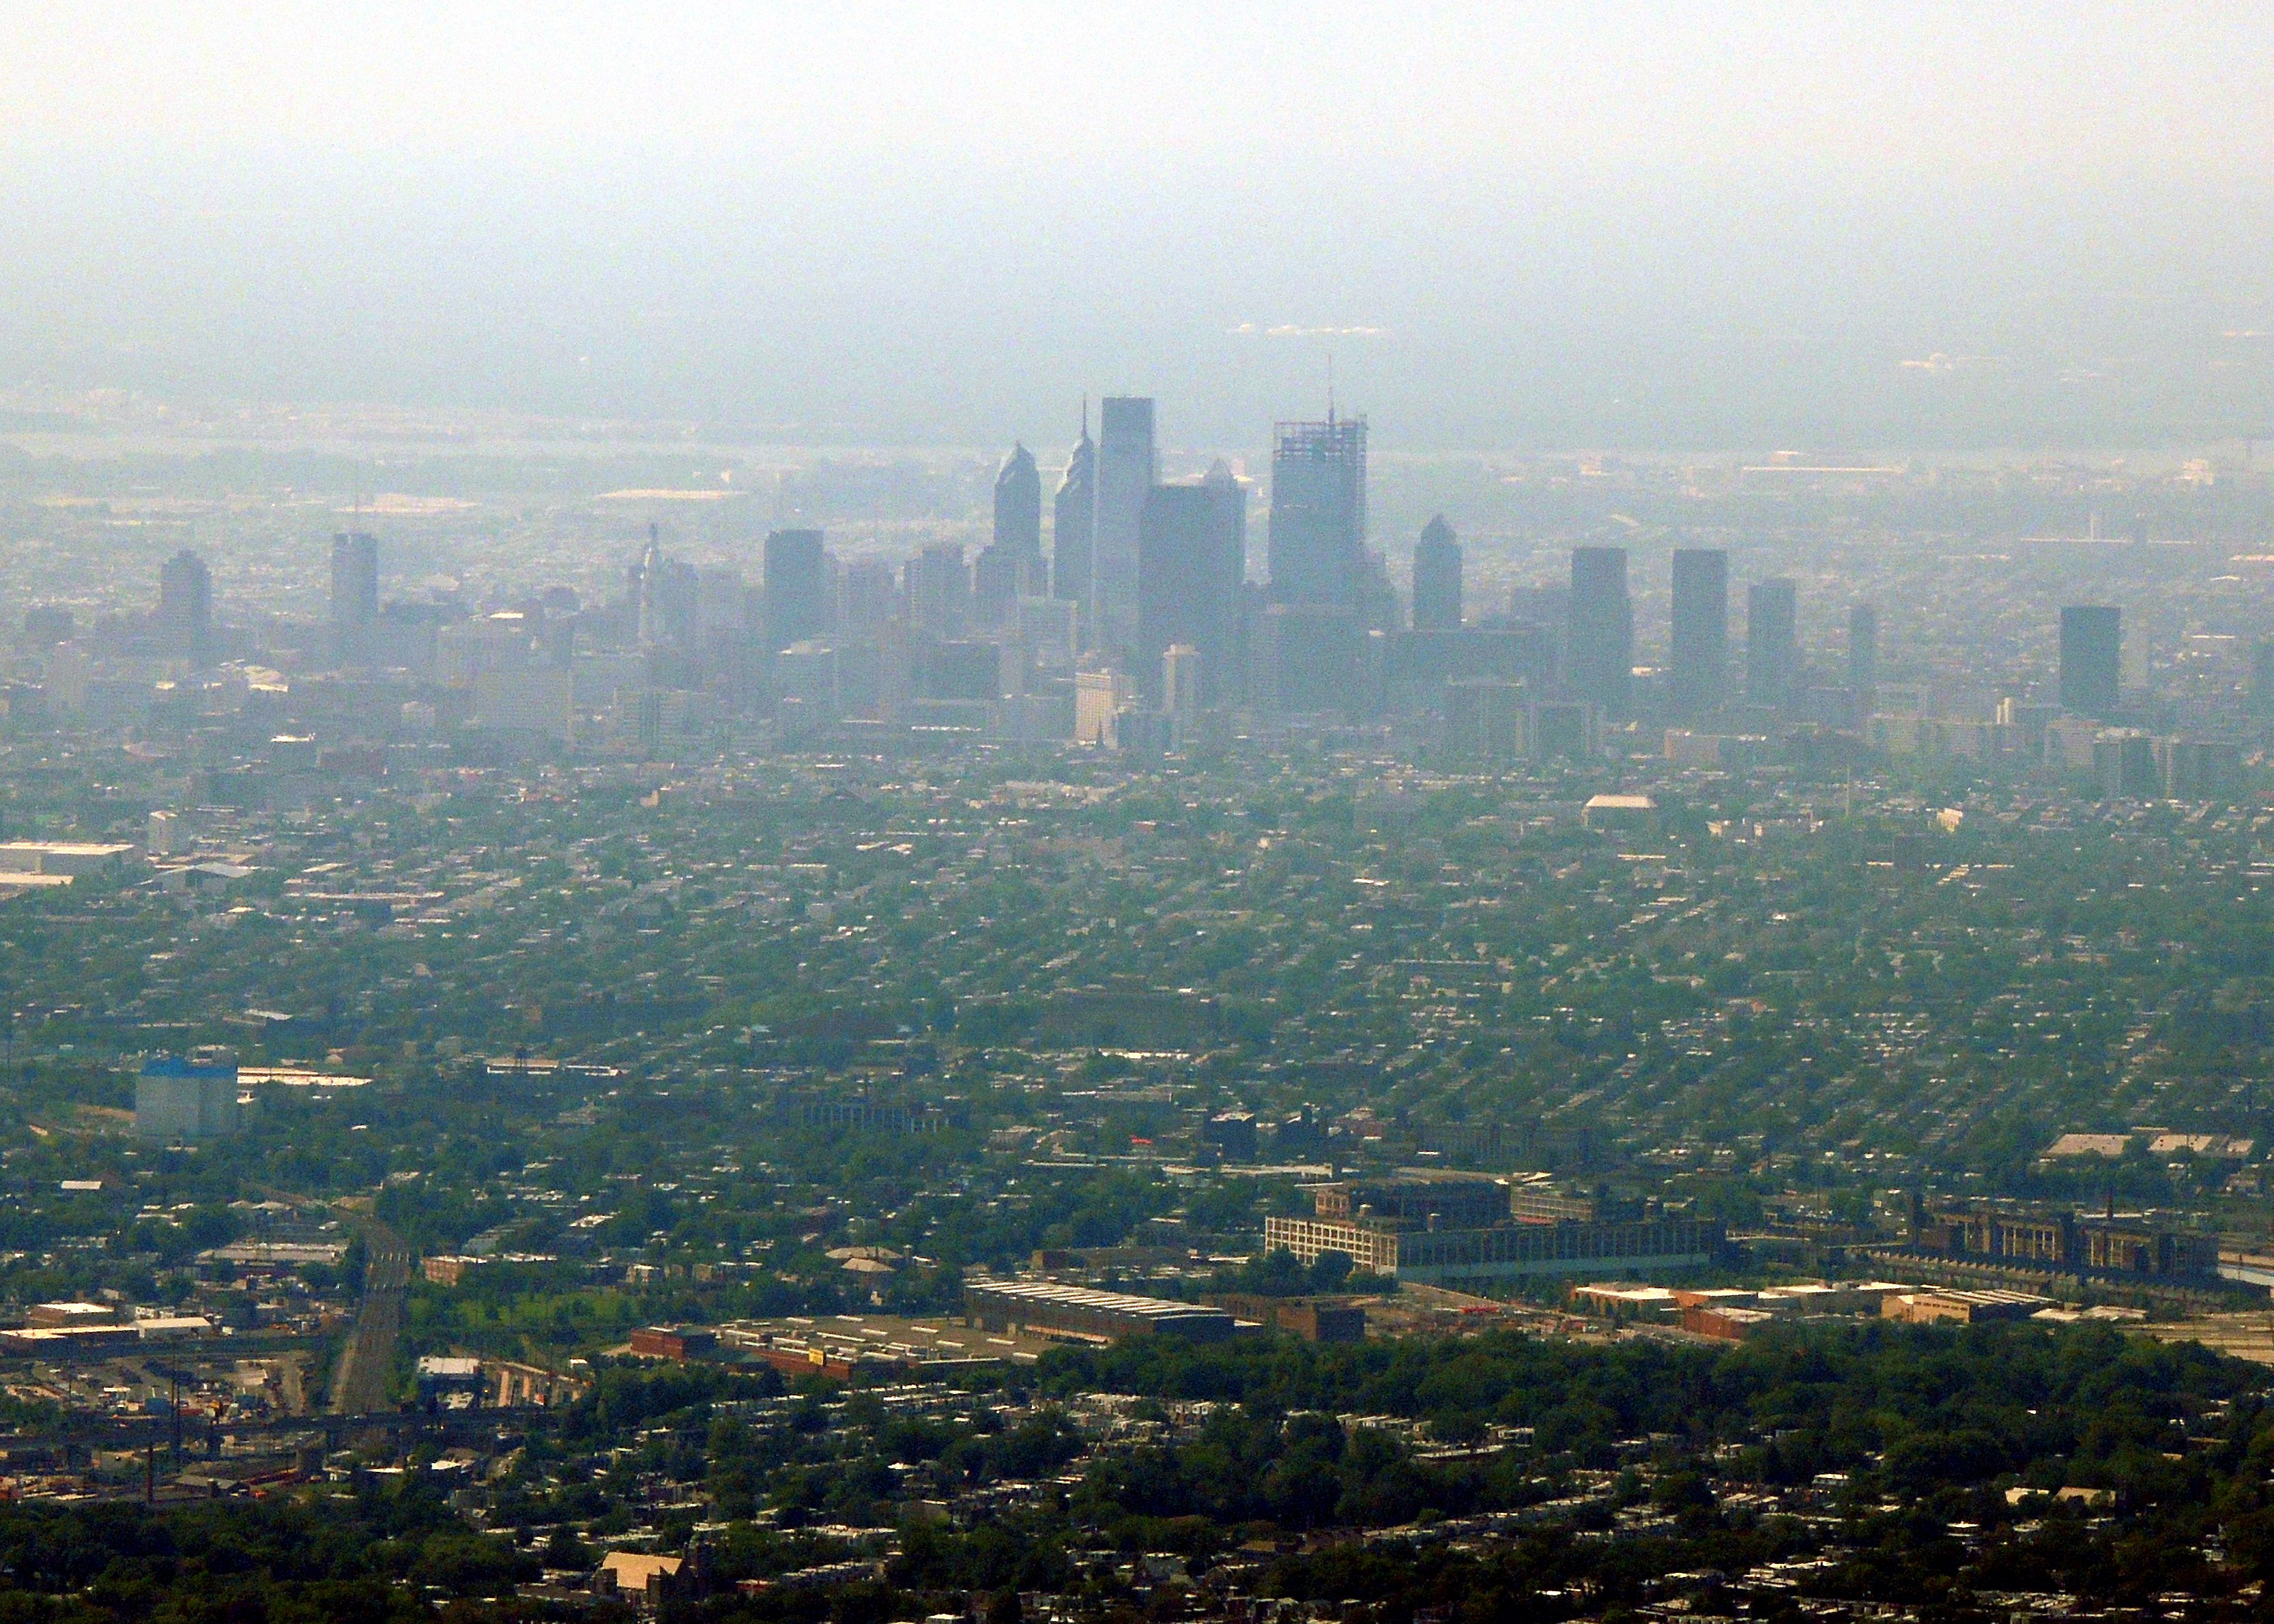 Philly thru the haze